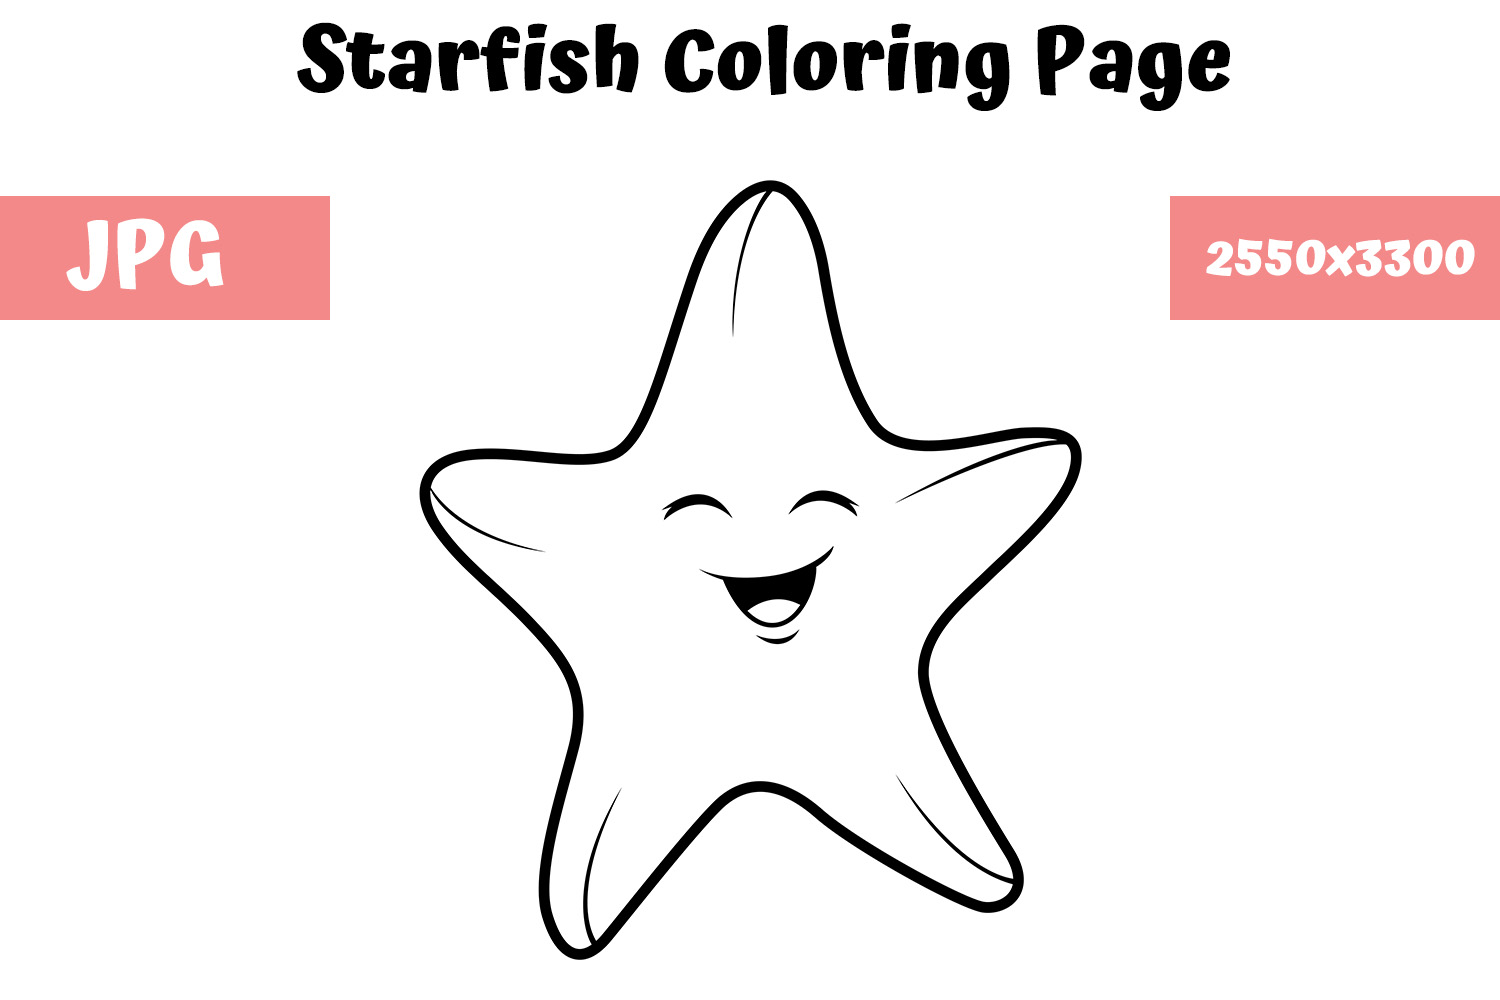 Coloring Book Page For Kids Starfish Graphic By Mybeautifulfiles Creative Fabrica